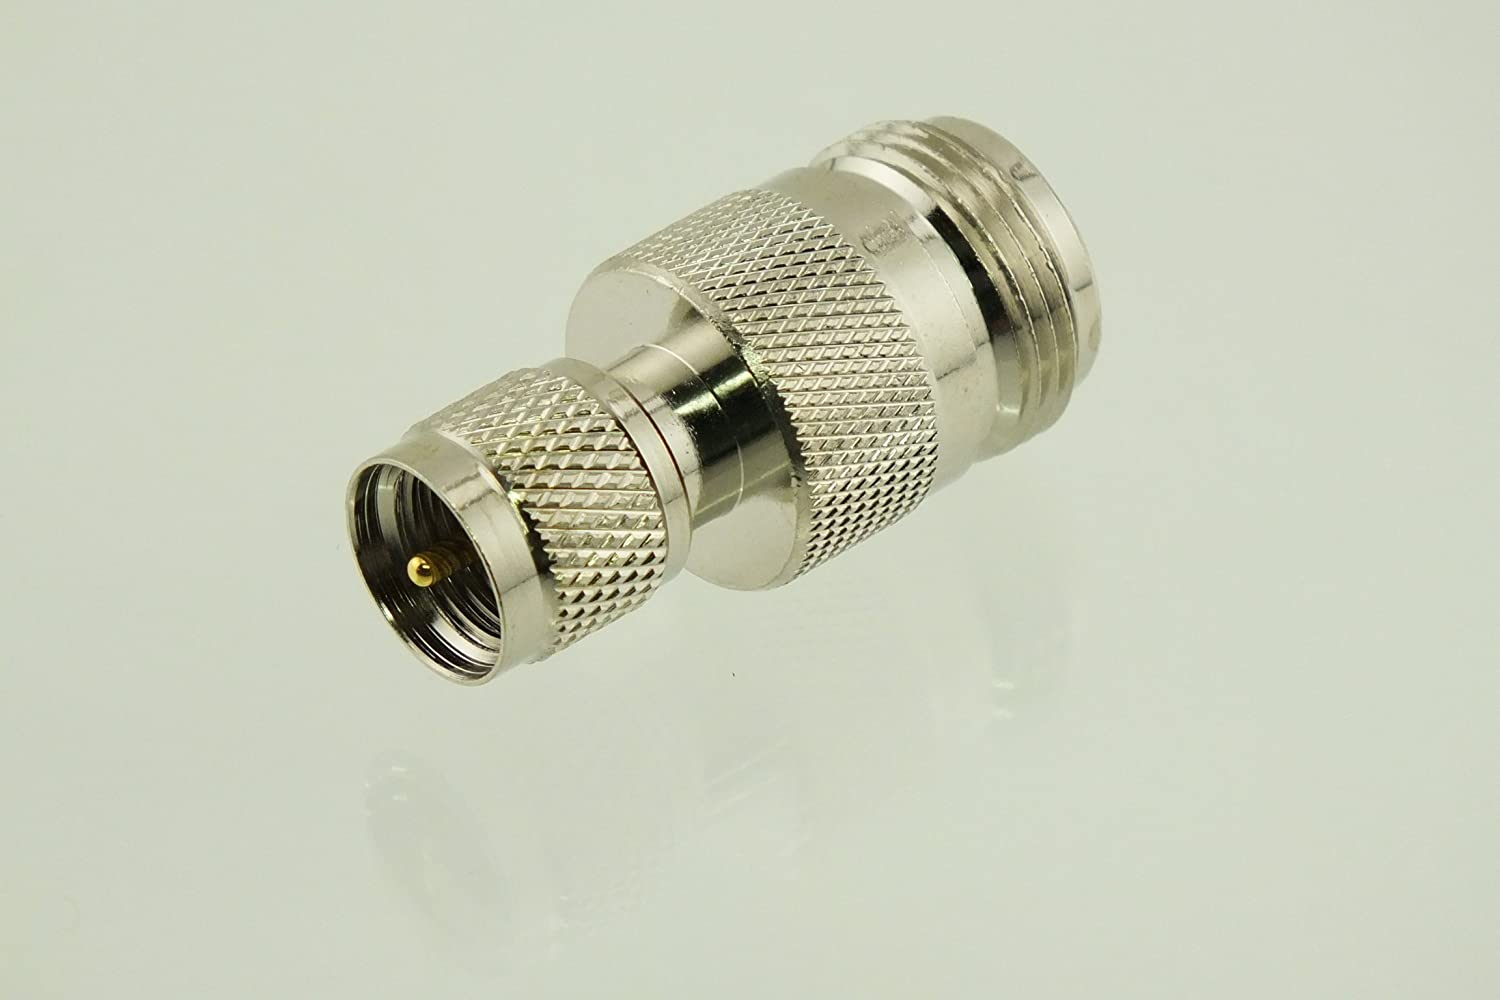 BNC Female to UHF Male Adapter Connector USA Seller by W5SWL